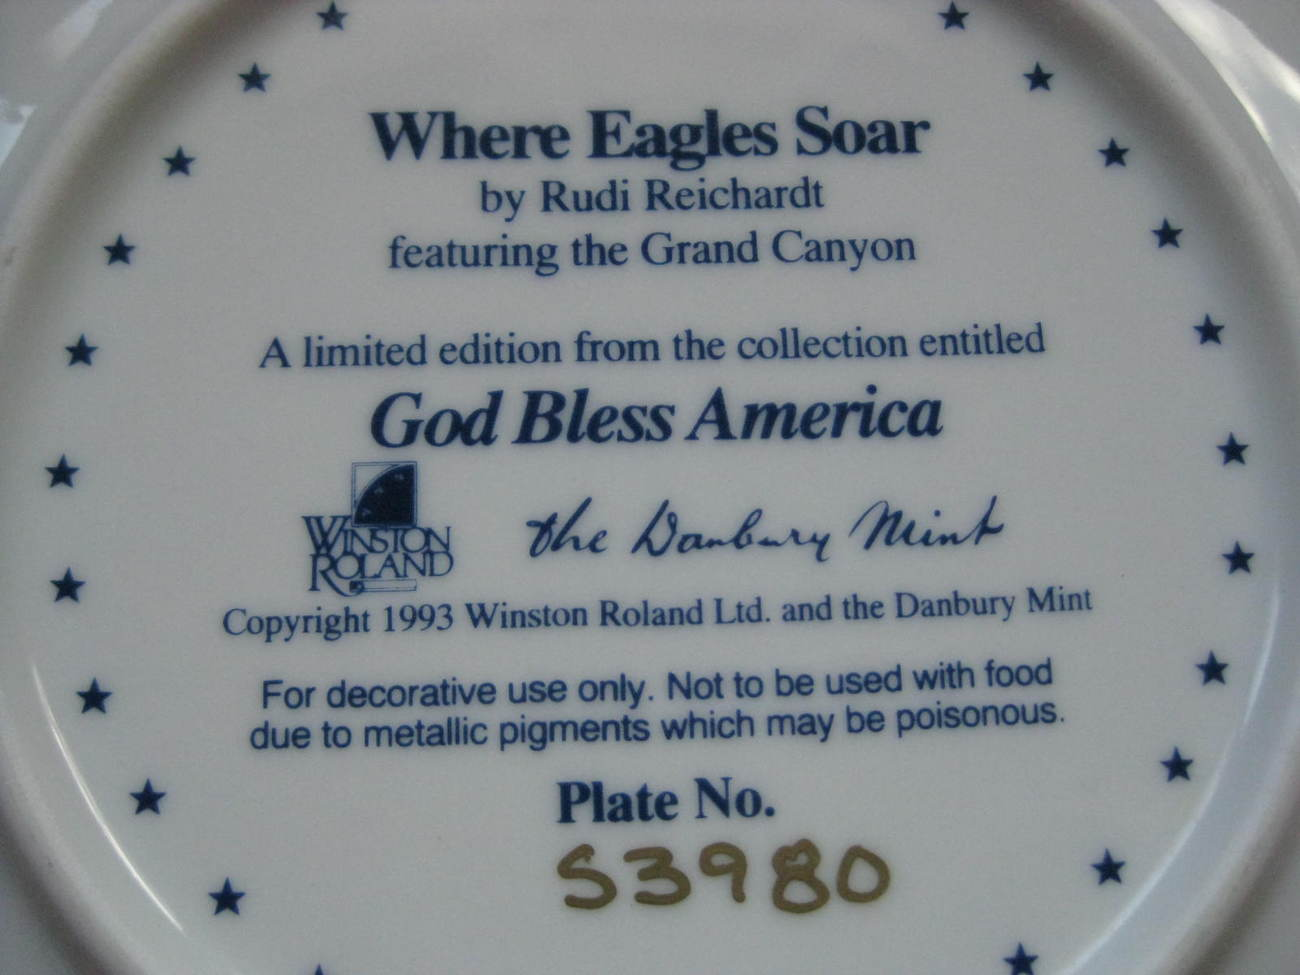 Framed Plate - WHERE EAGLES SOAR featuring the GRAND CANYON - Danbury Mint image 3